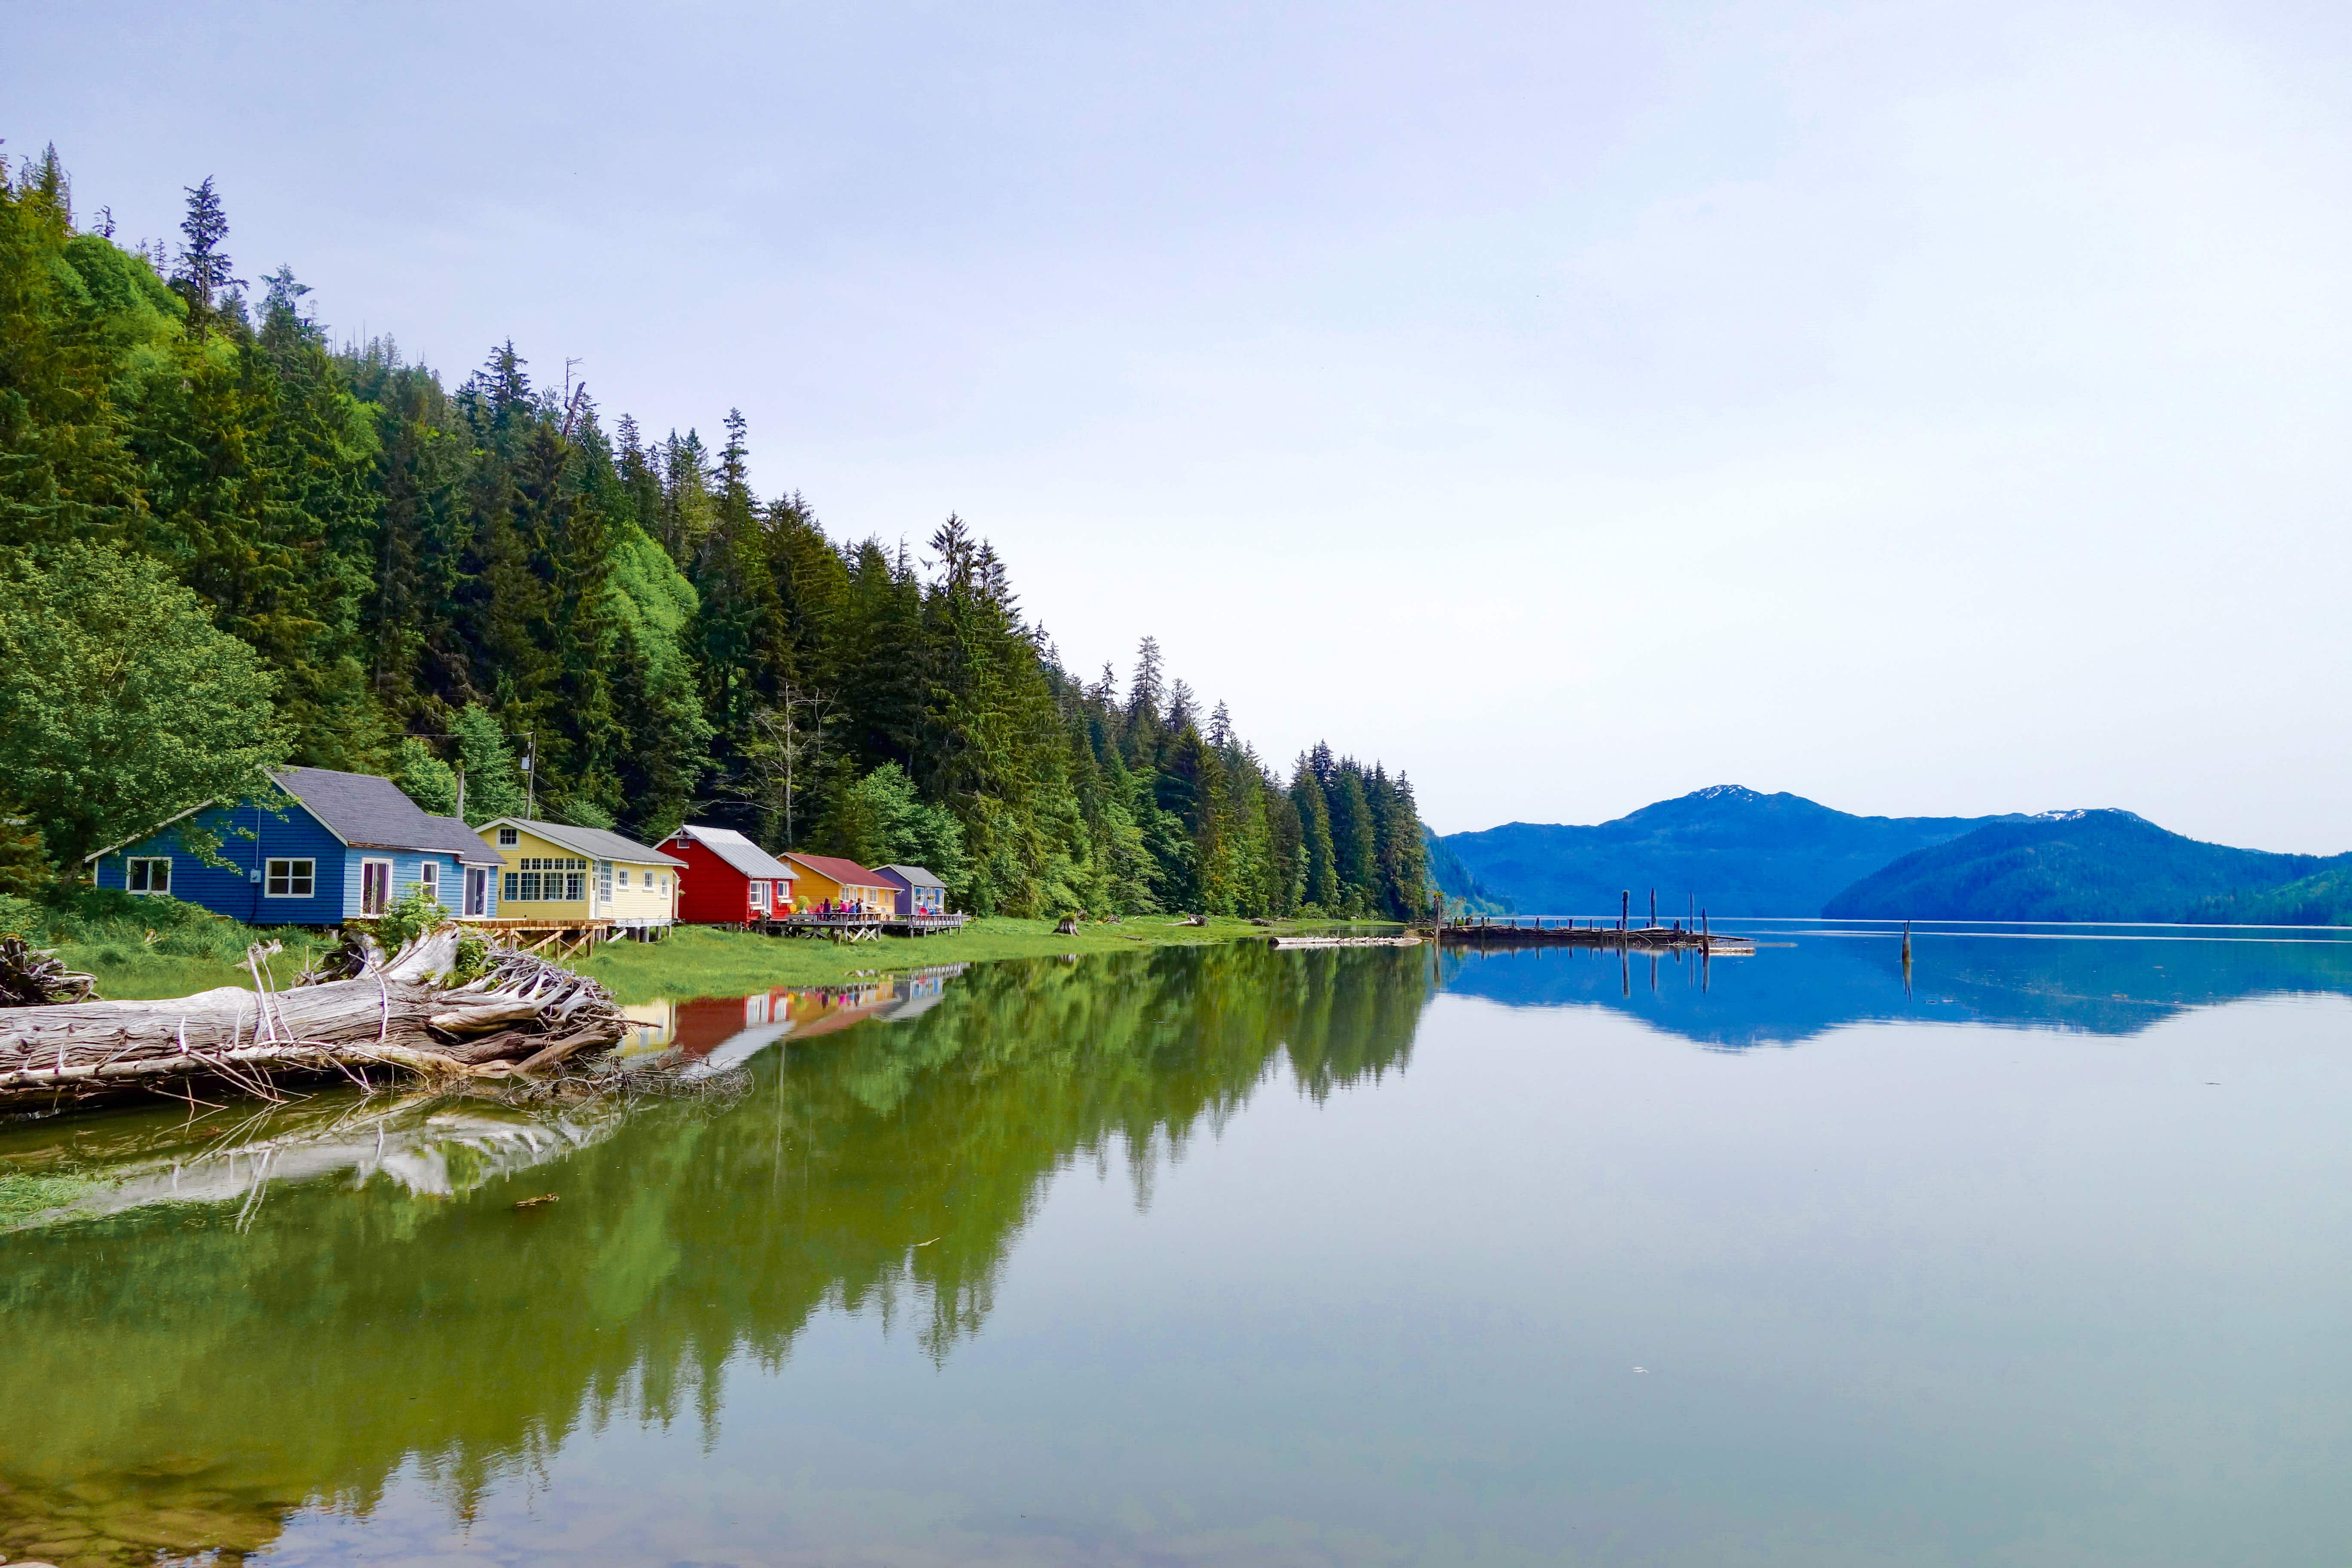 Once an old cannery in British Columbia, Cassiar retains an element of remote, fishing-camp charm © Justine Crawford